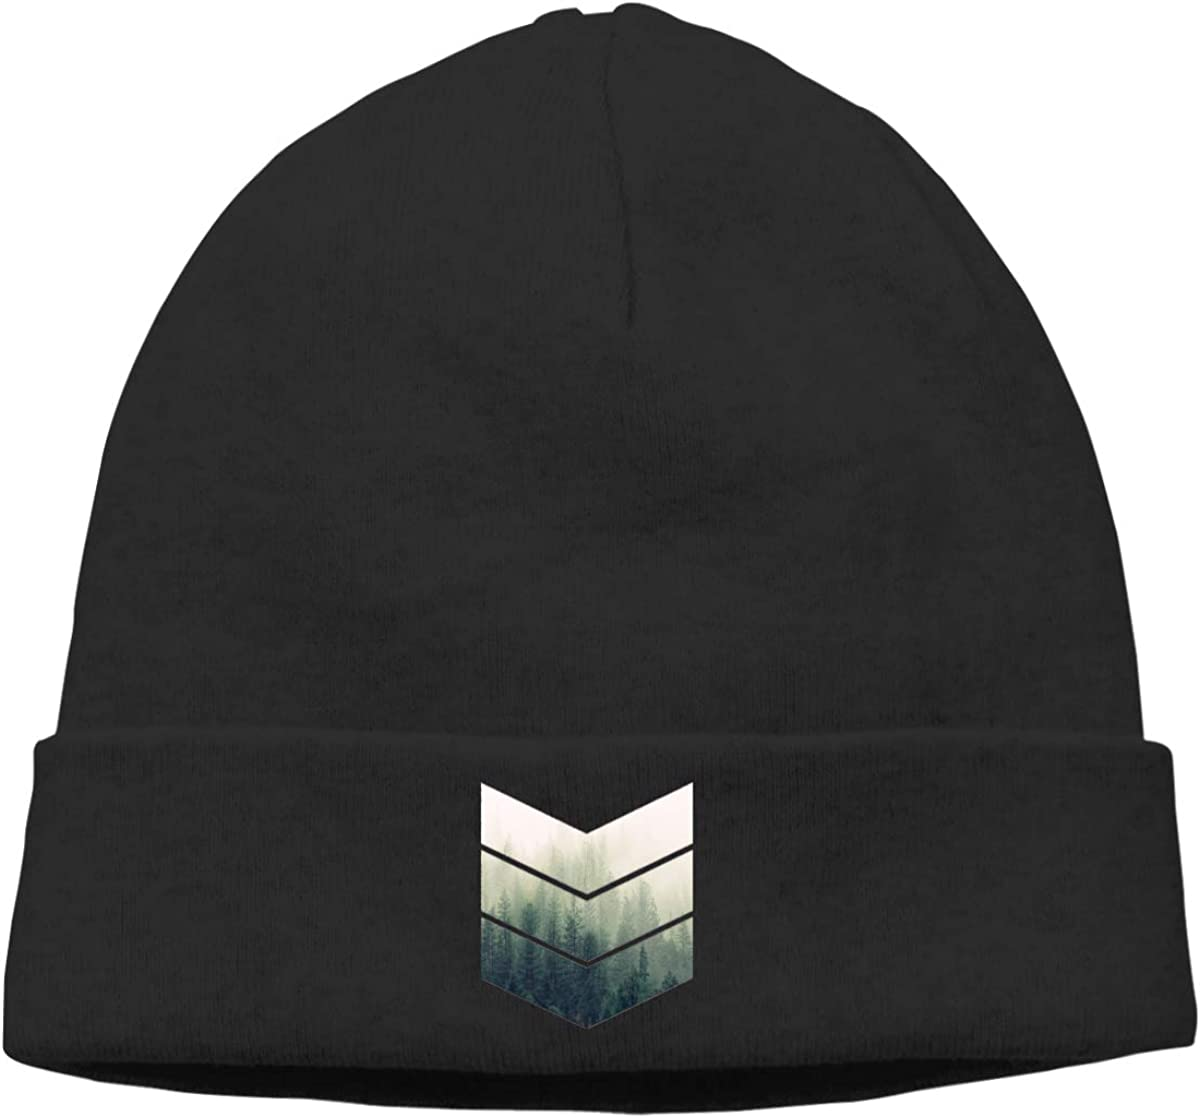 Nskngr Geometric Misty Forest Men Women Warm /& Stylish Slouchy Beanie Hat